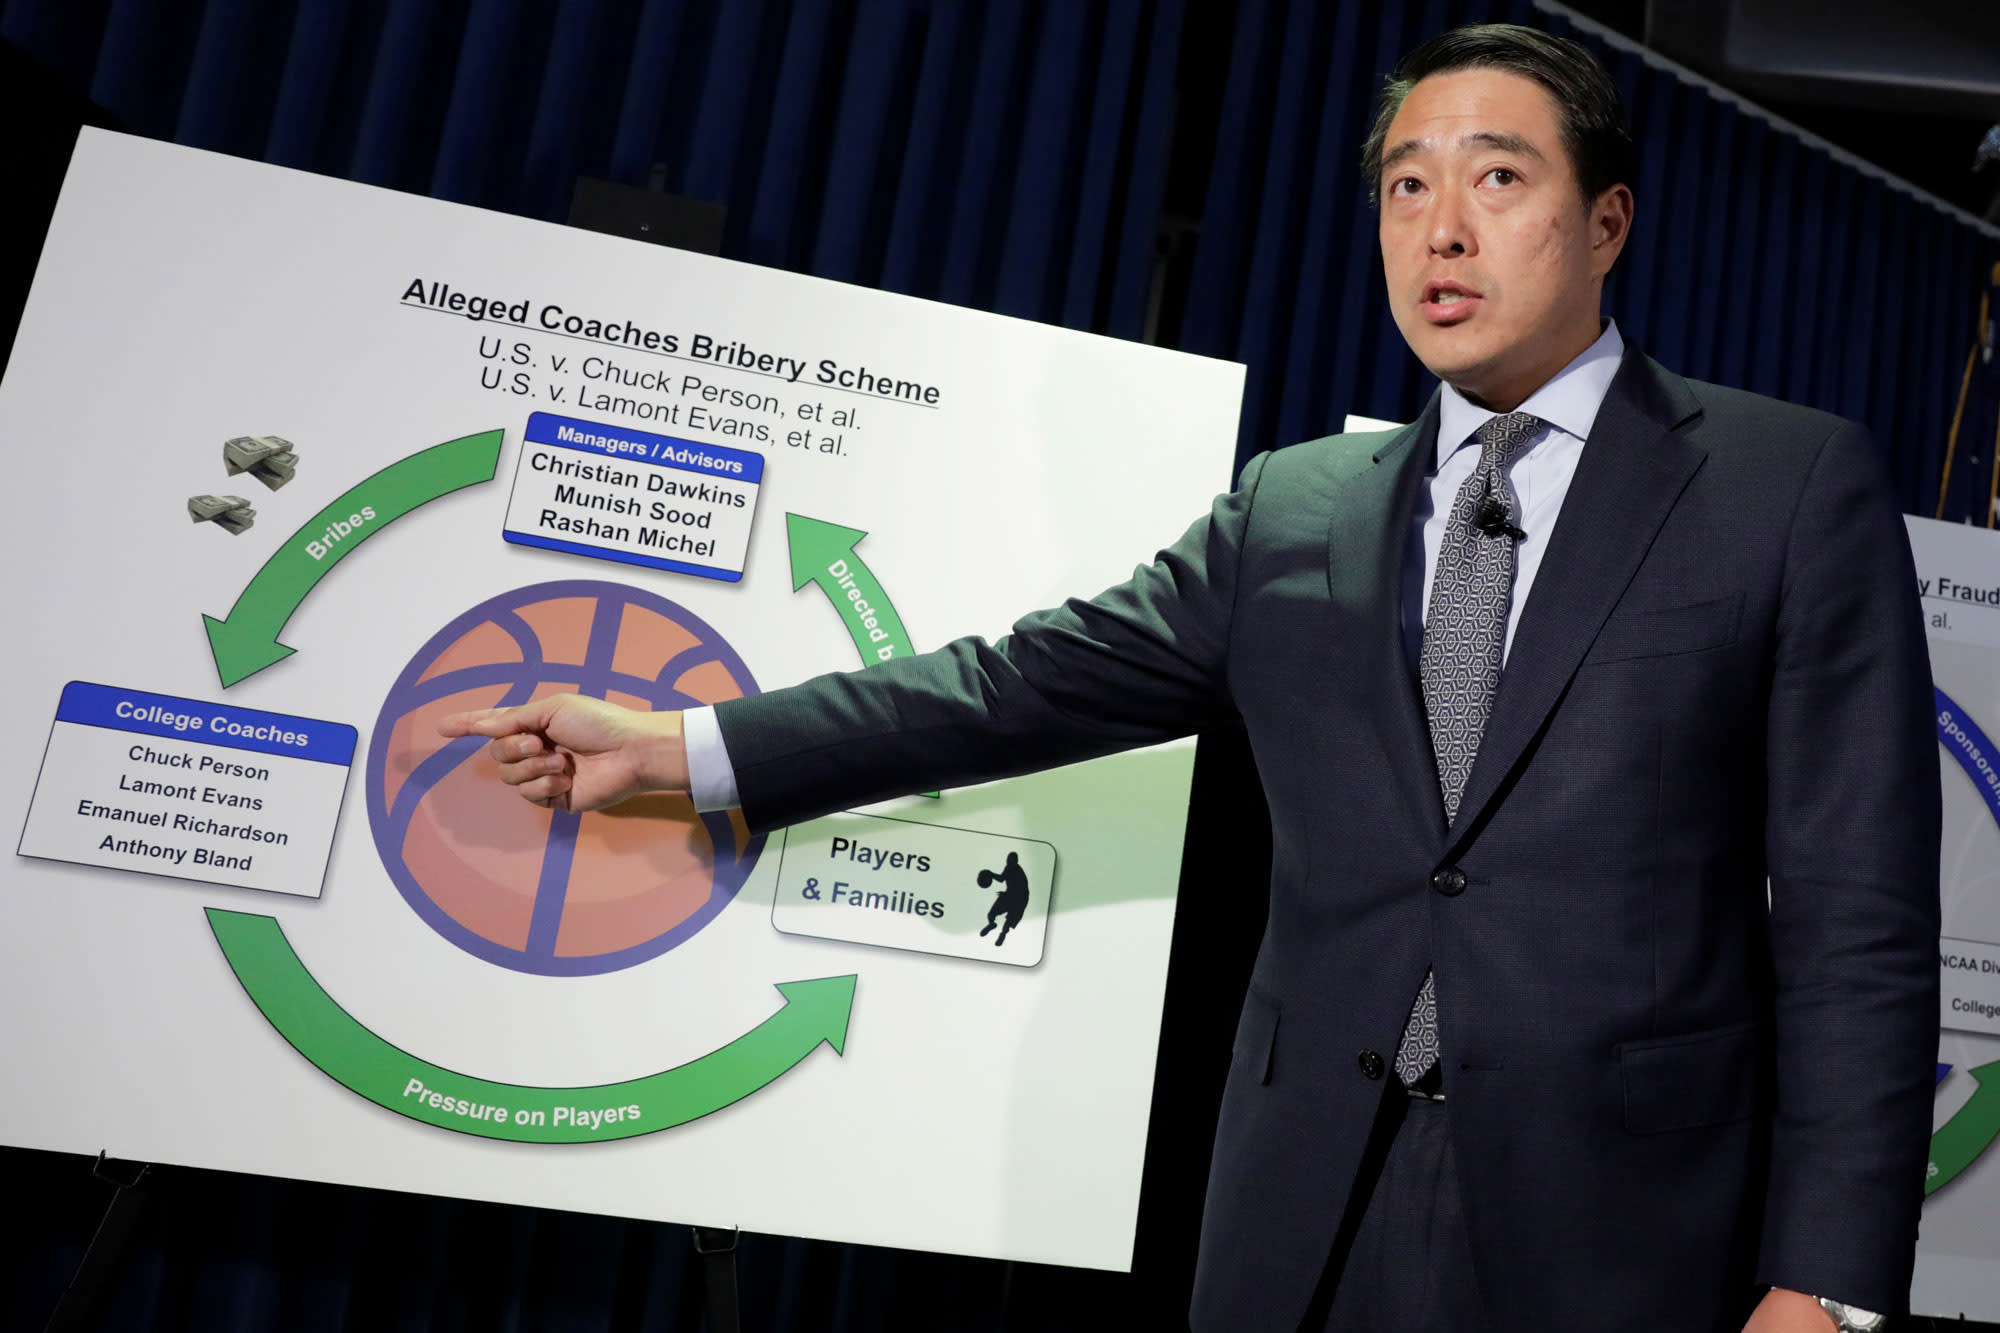 e8c1724f19f Witness at center of NCAA basketball bribe scandal is disgraced investment  advisor